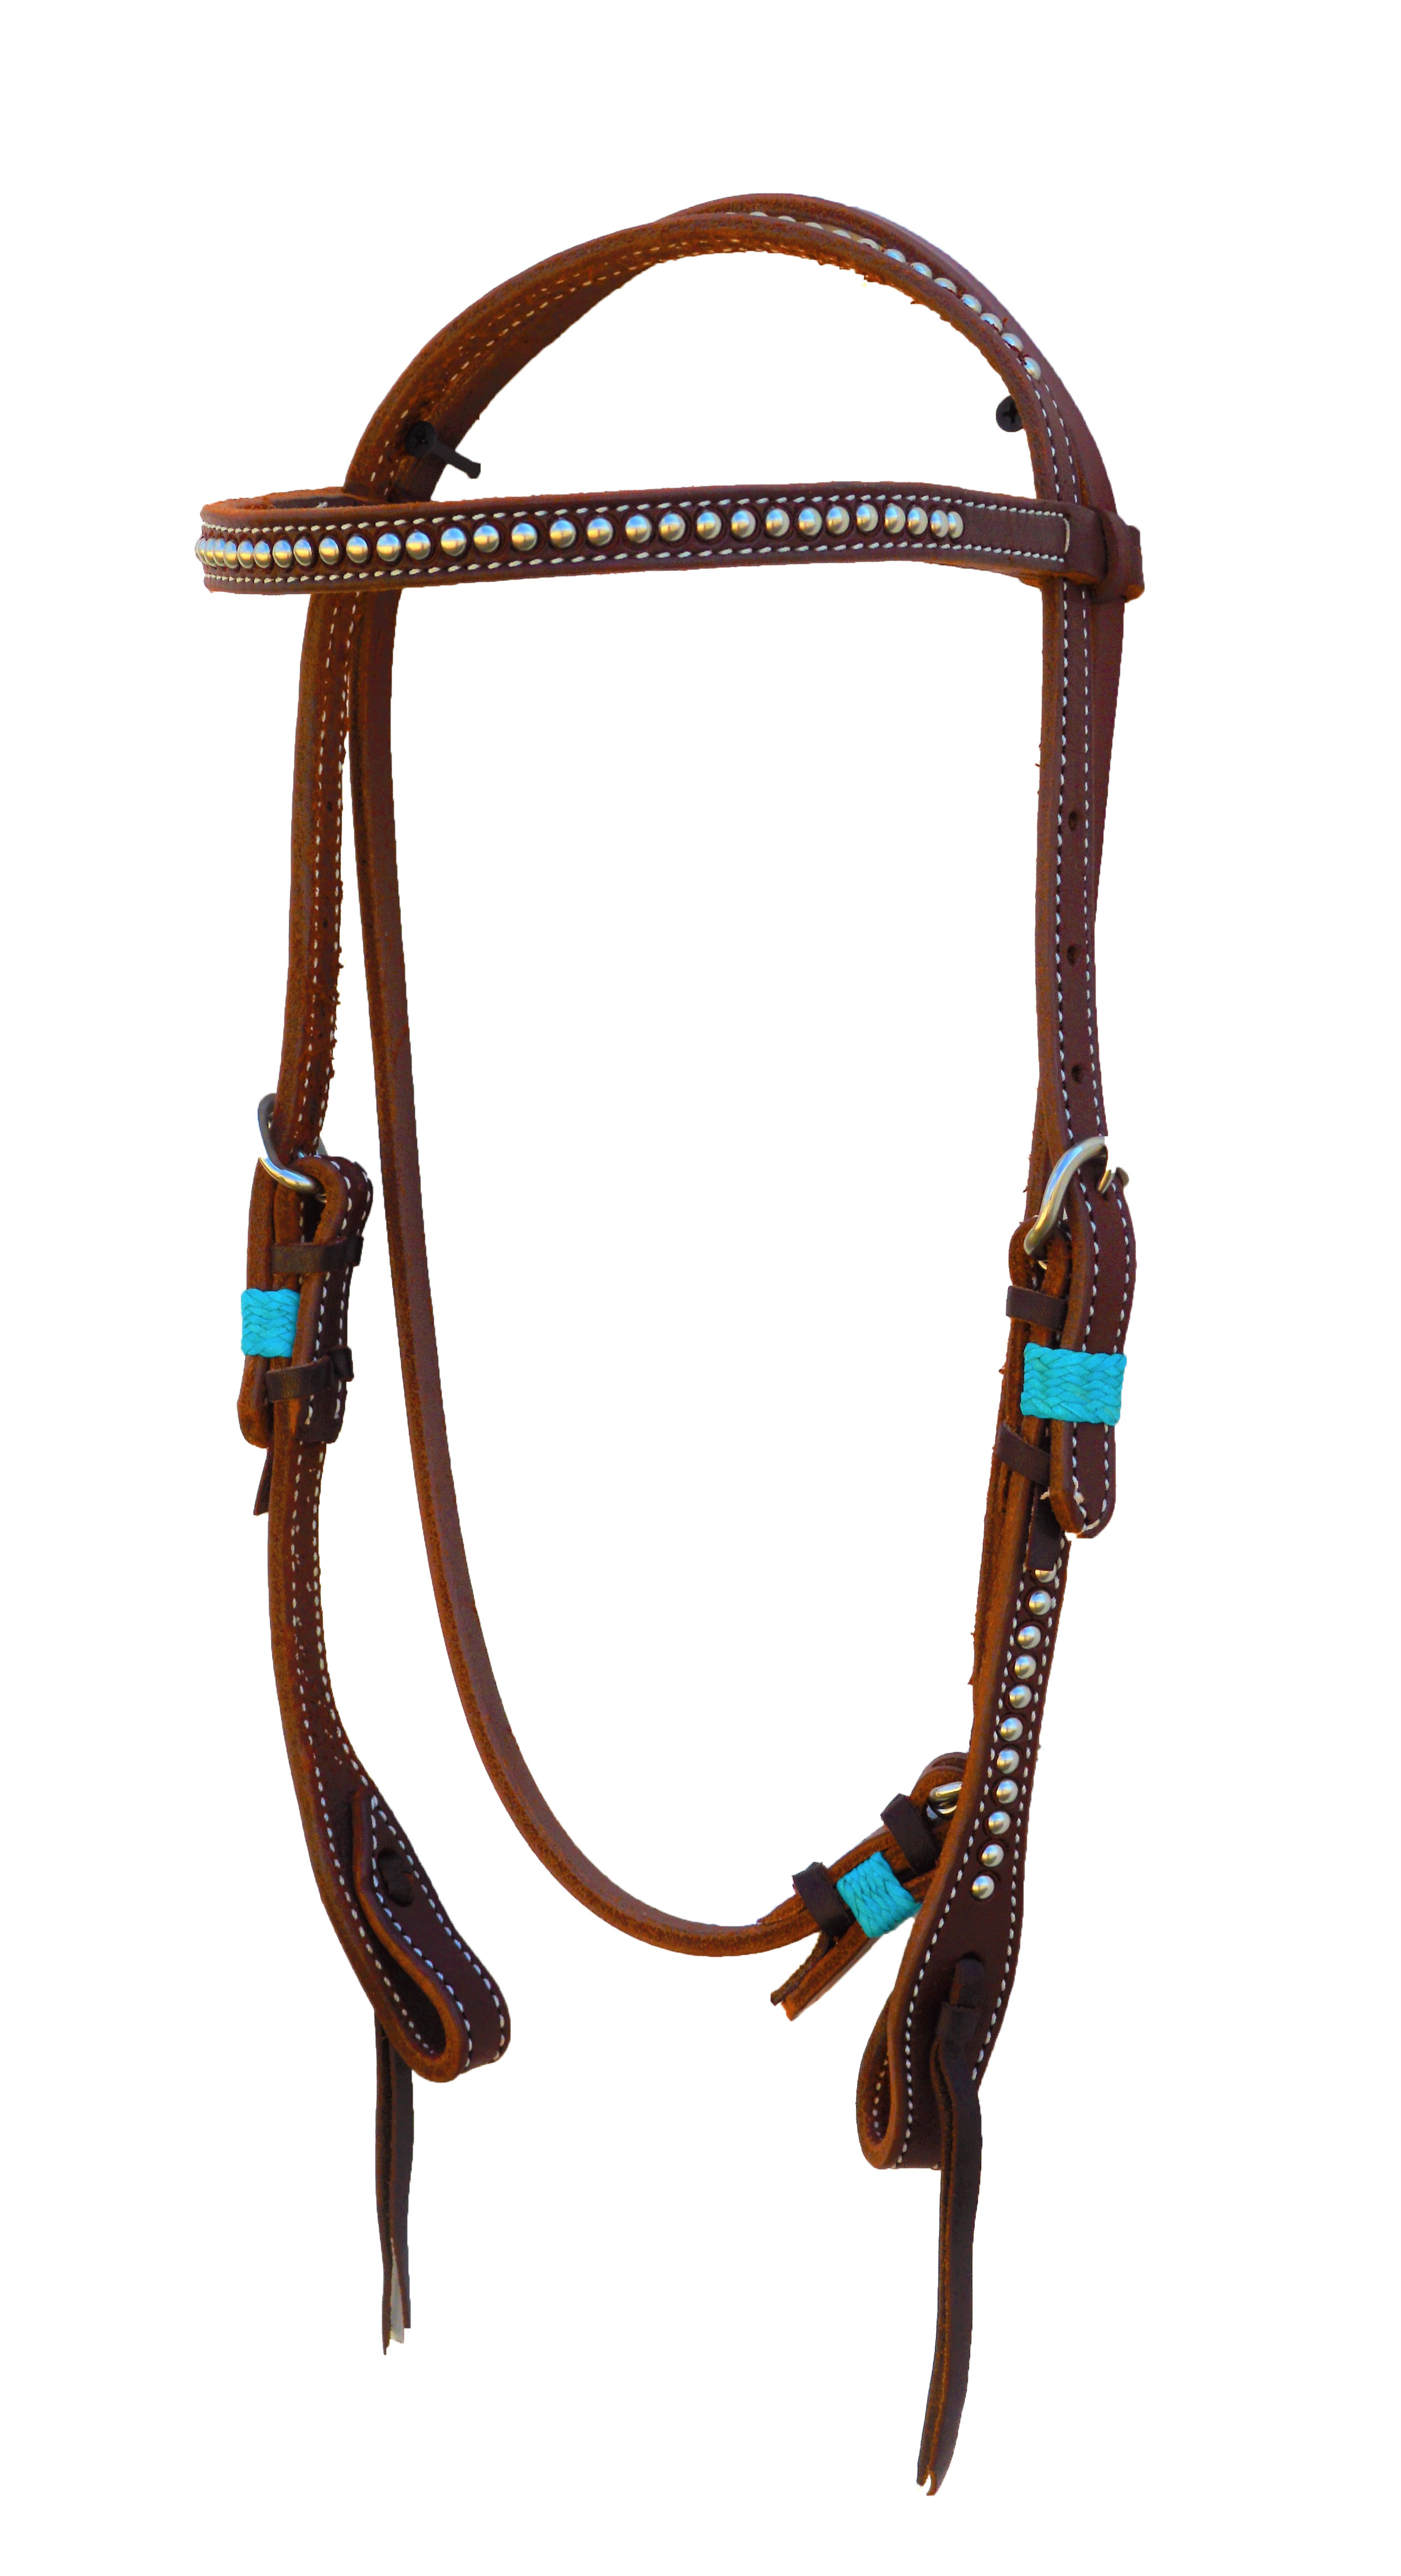 STRAIGHT HEADSTALL WITH OILED LEATHER AND SPOTTING